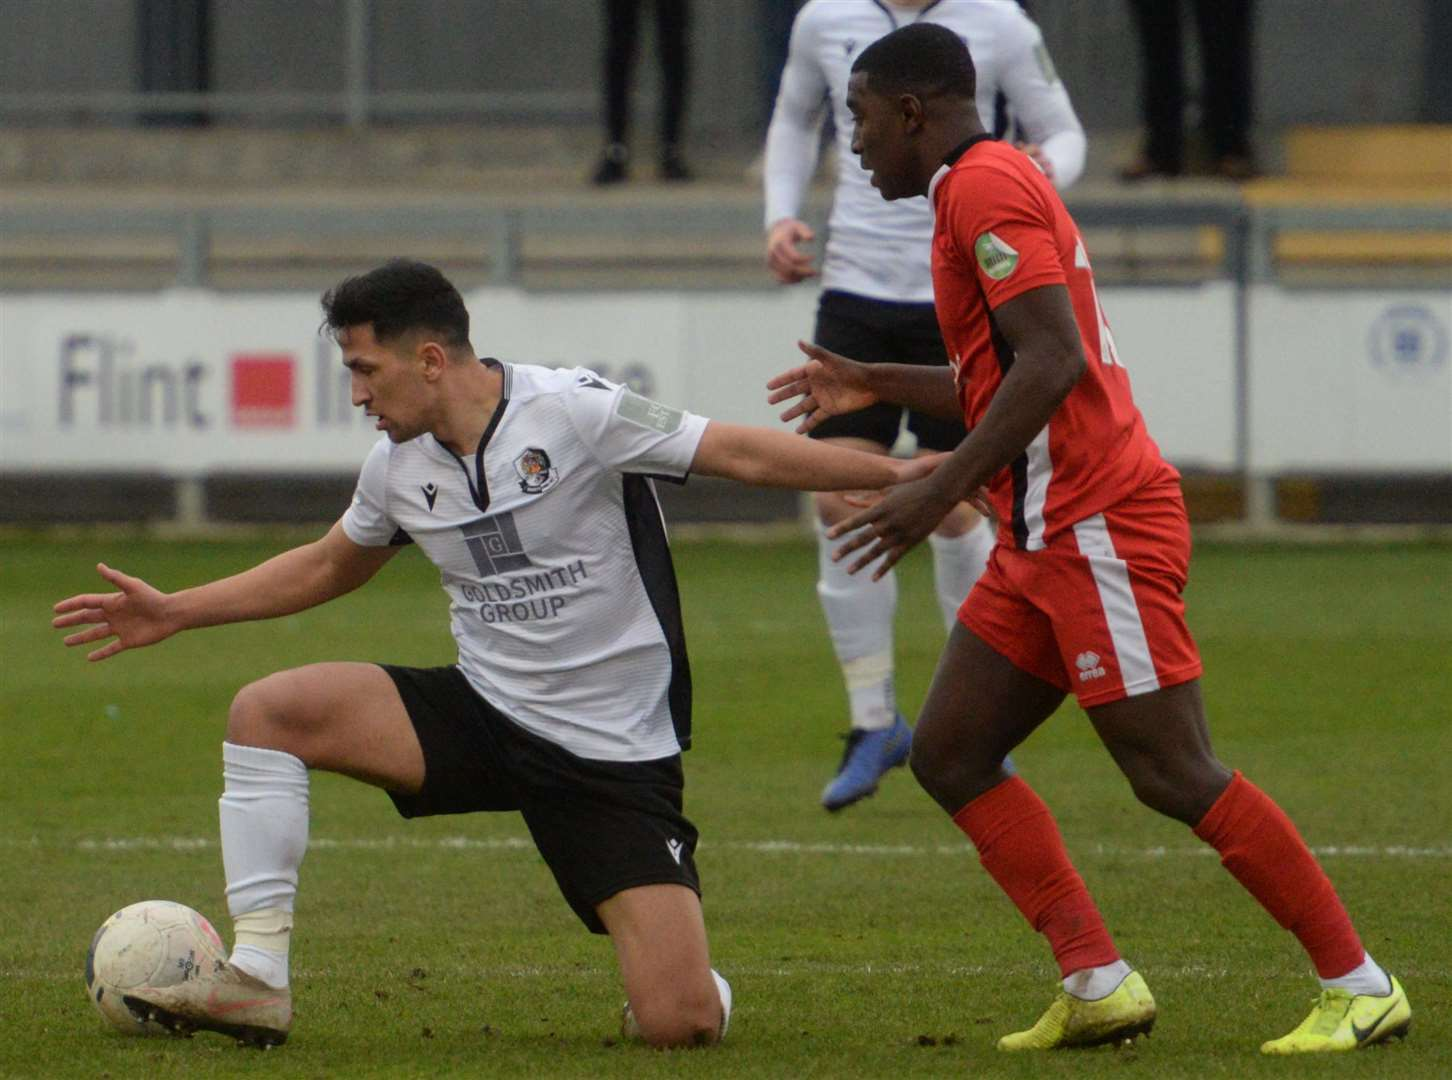 Debutant Noor Husin in action for Dartford against Eastbourne on Saturday. Picture: Chris Davey FM29882273